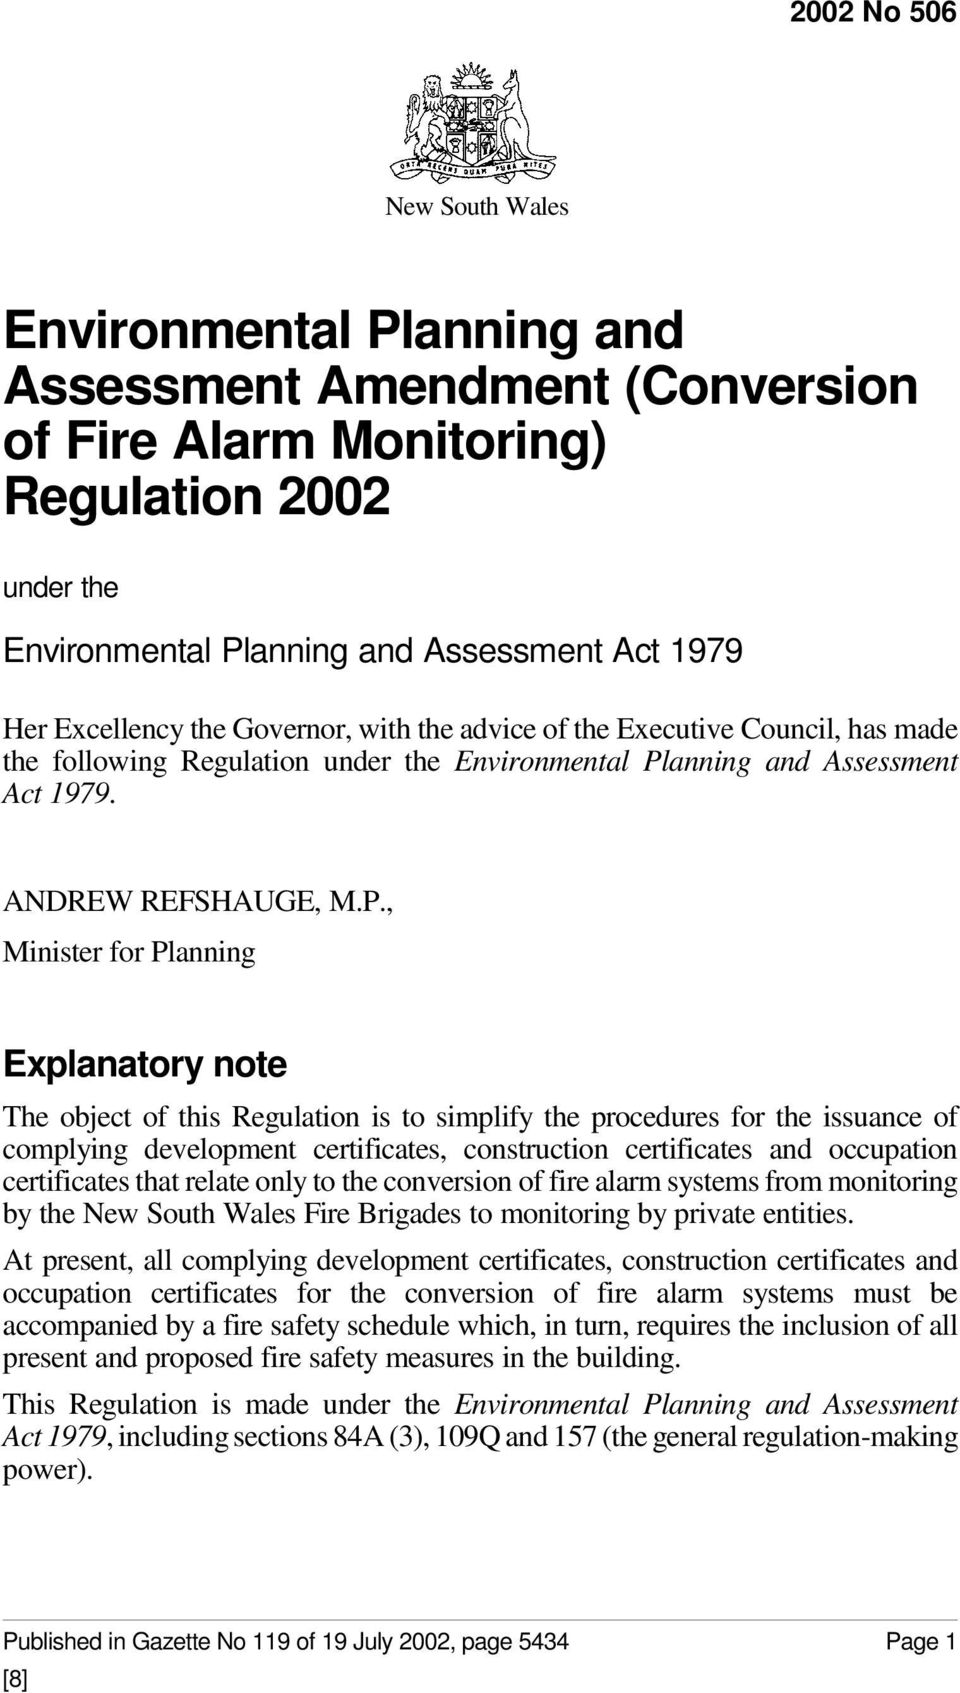 anning and Assessment Act 1979. ANDREW REFSHAUGE, M.P.